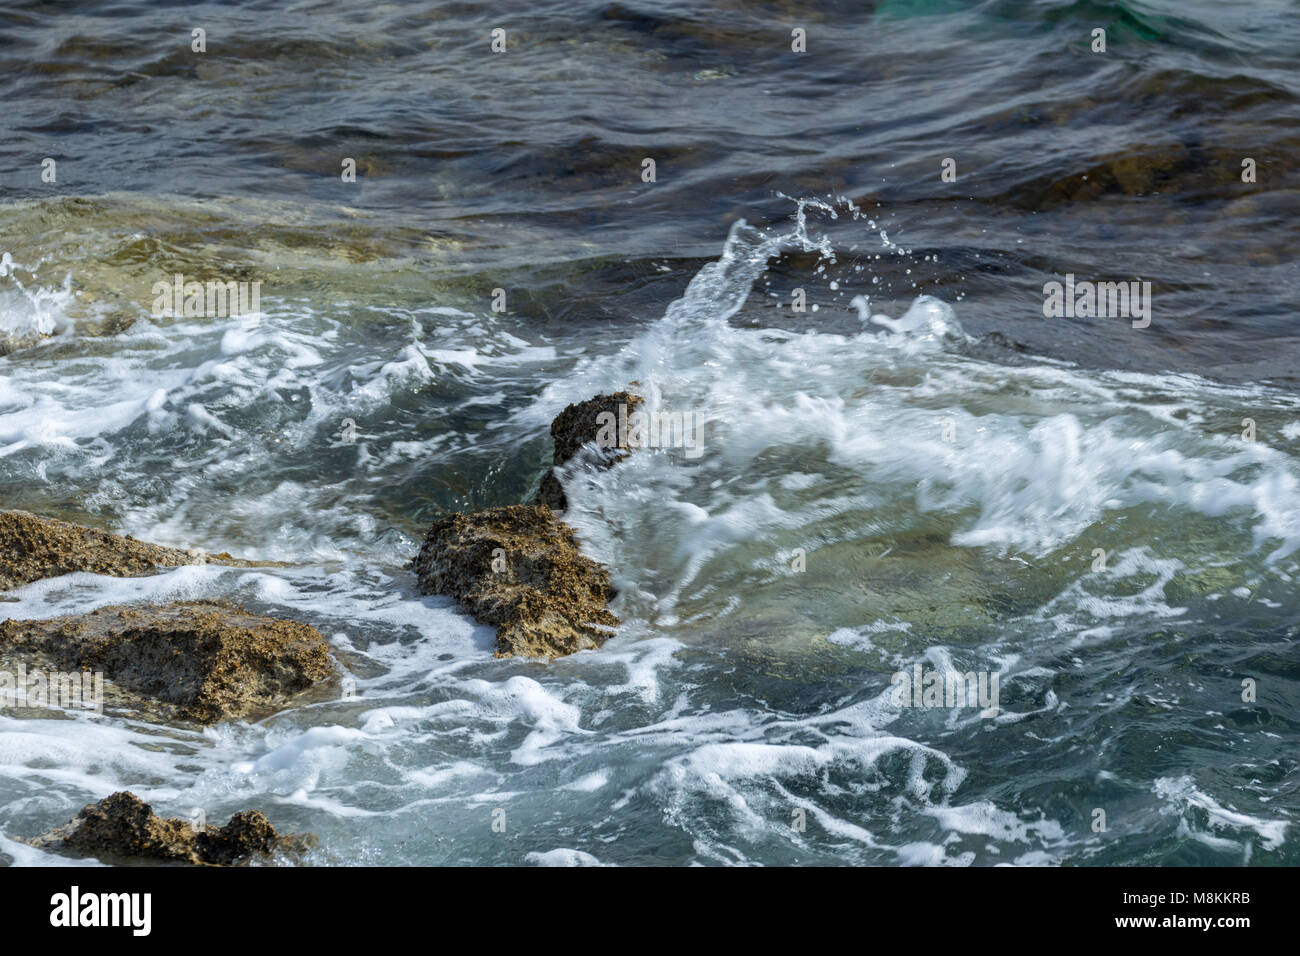 Splashing water abstract of the Mediterranean sea in Paphos harbour, Cyprus - Stock Image